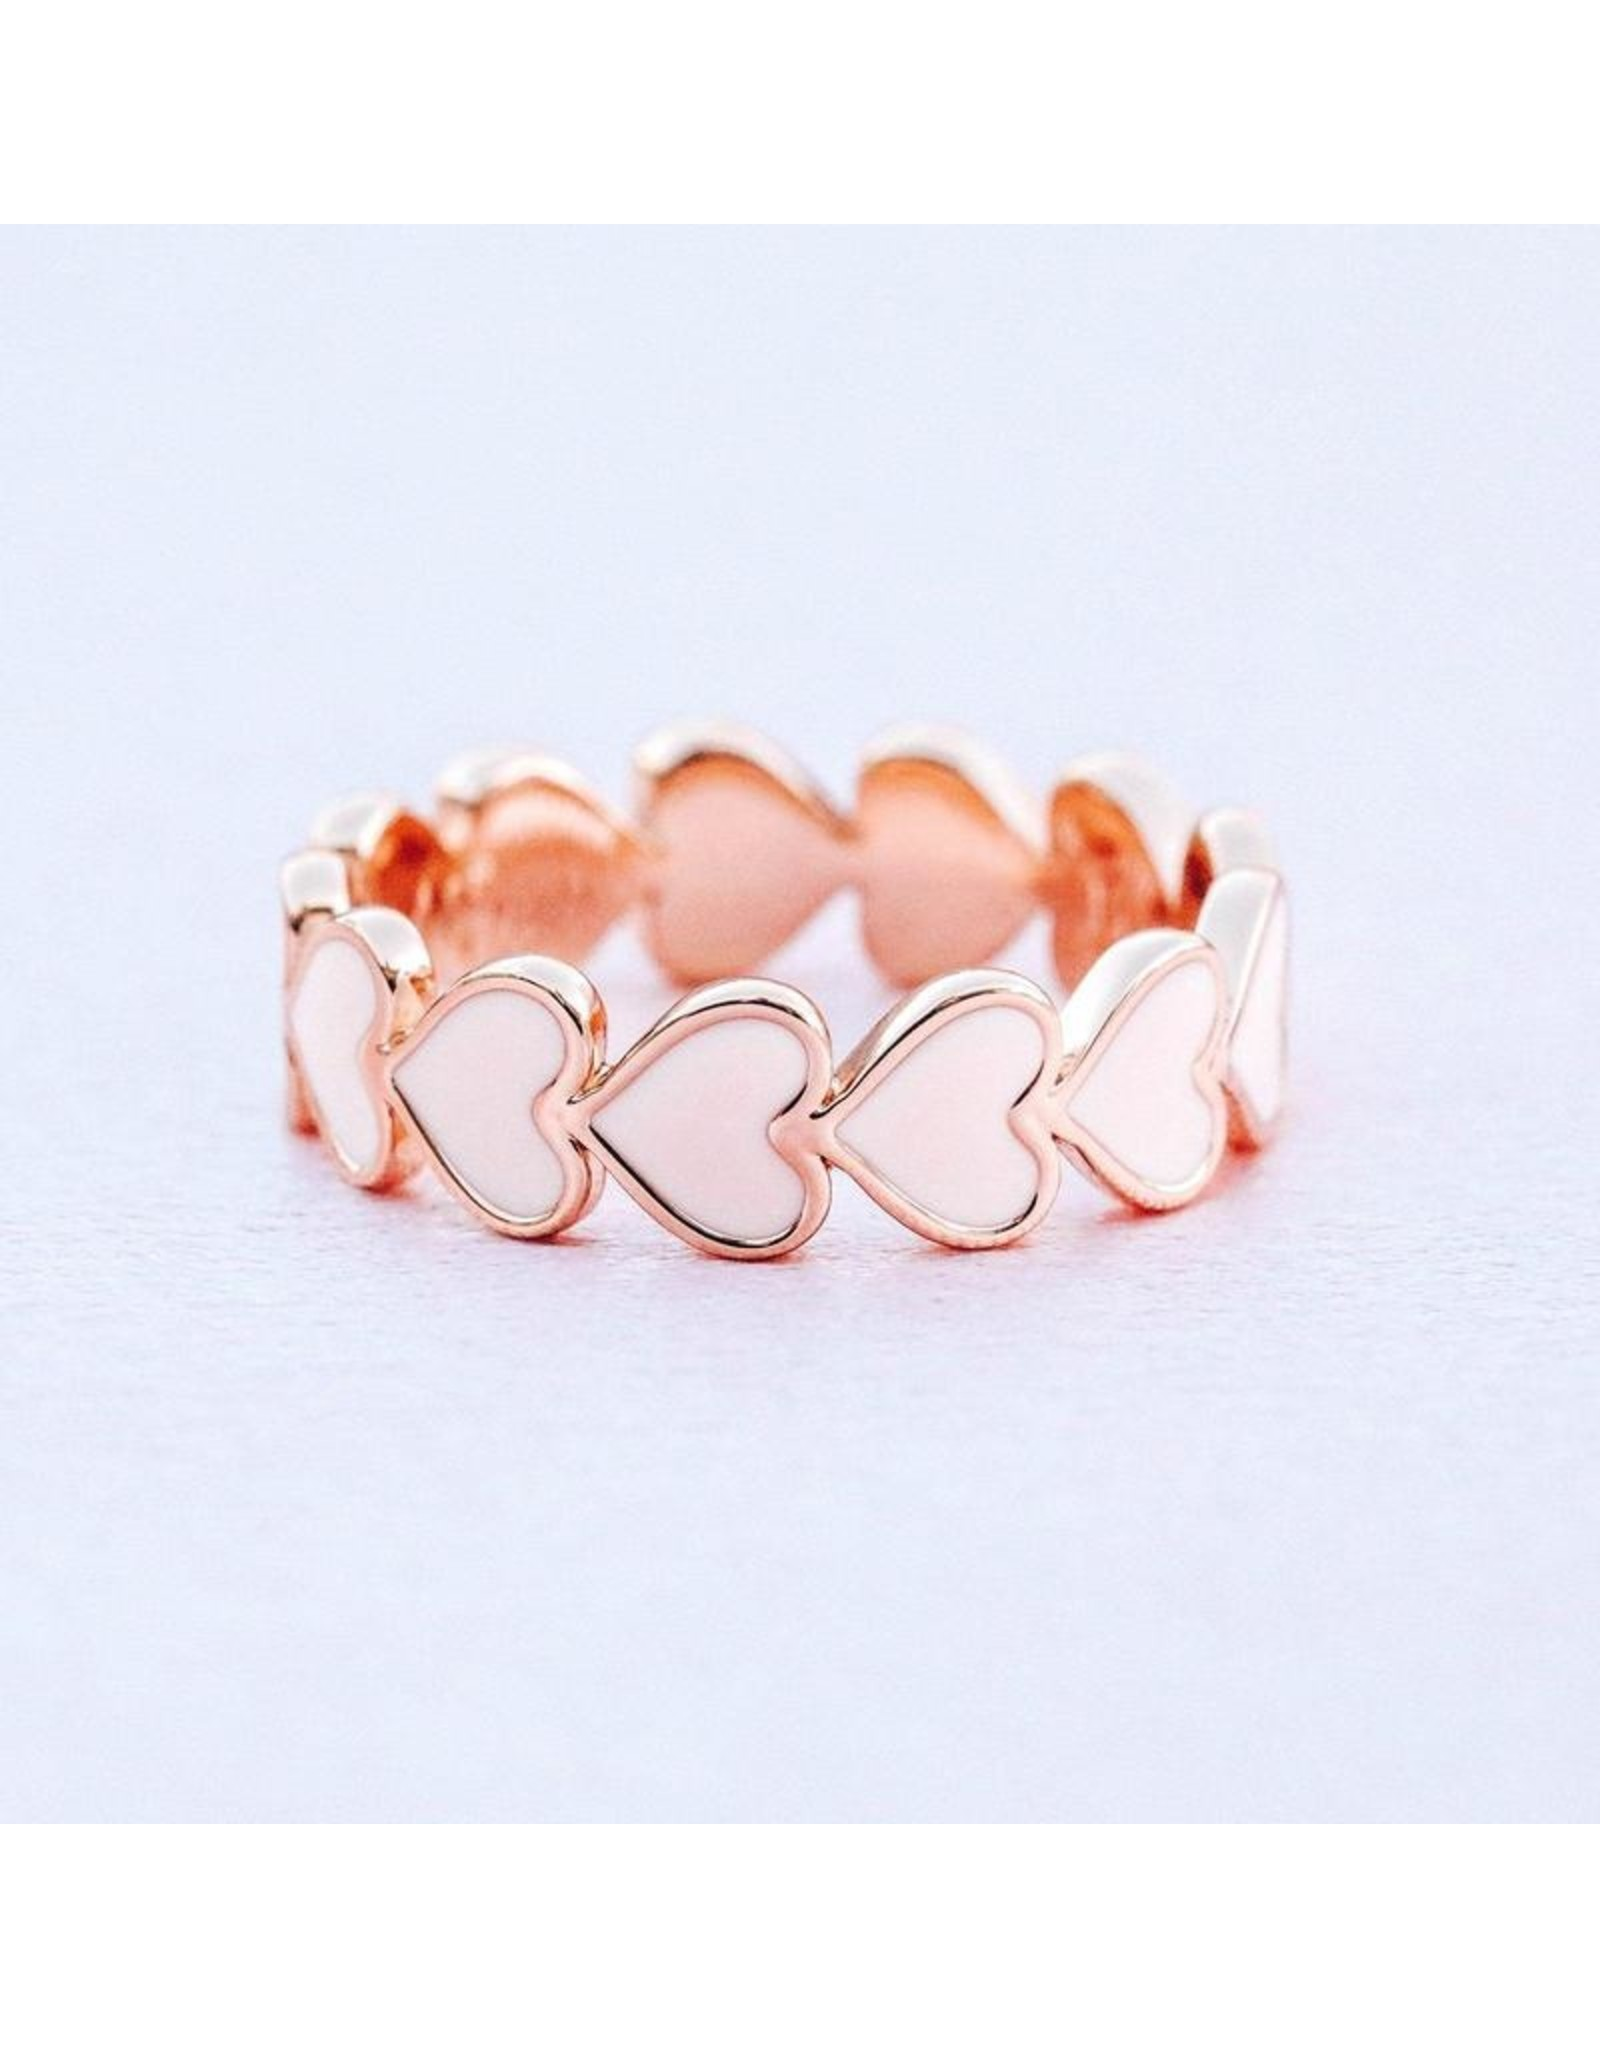 Pura Vida Love Enamel Heart Band Ring, Rose Gold